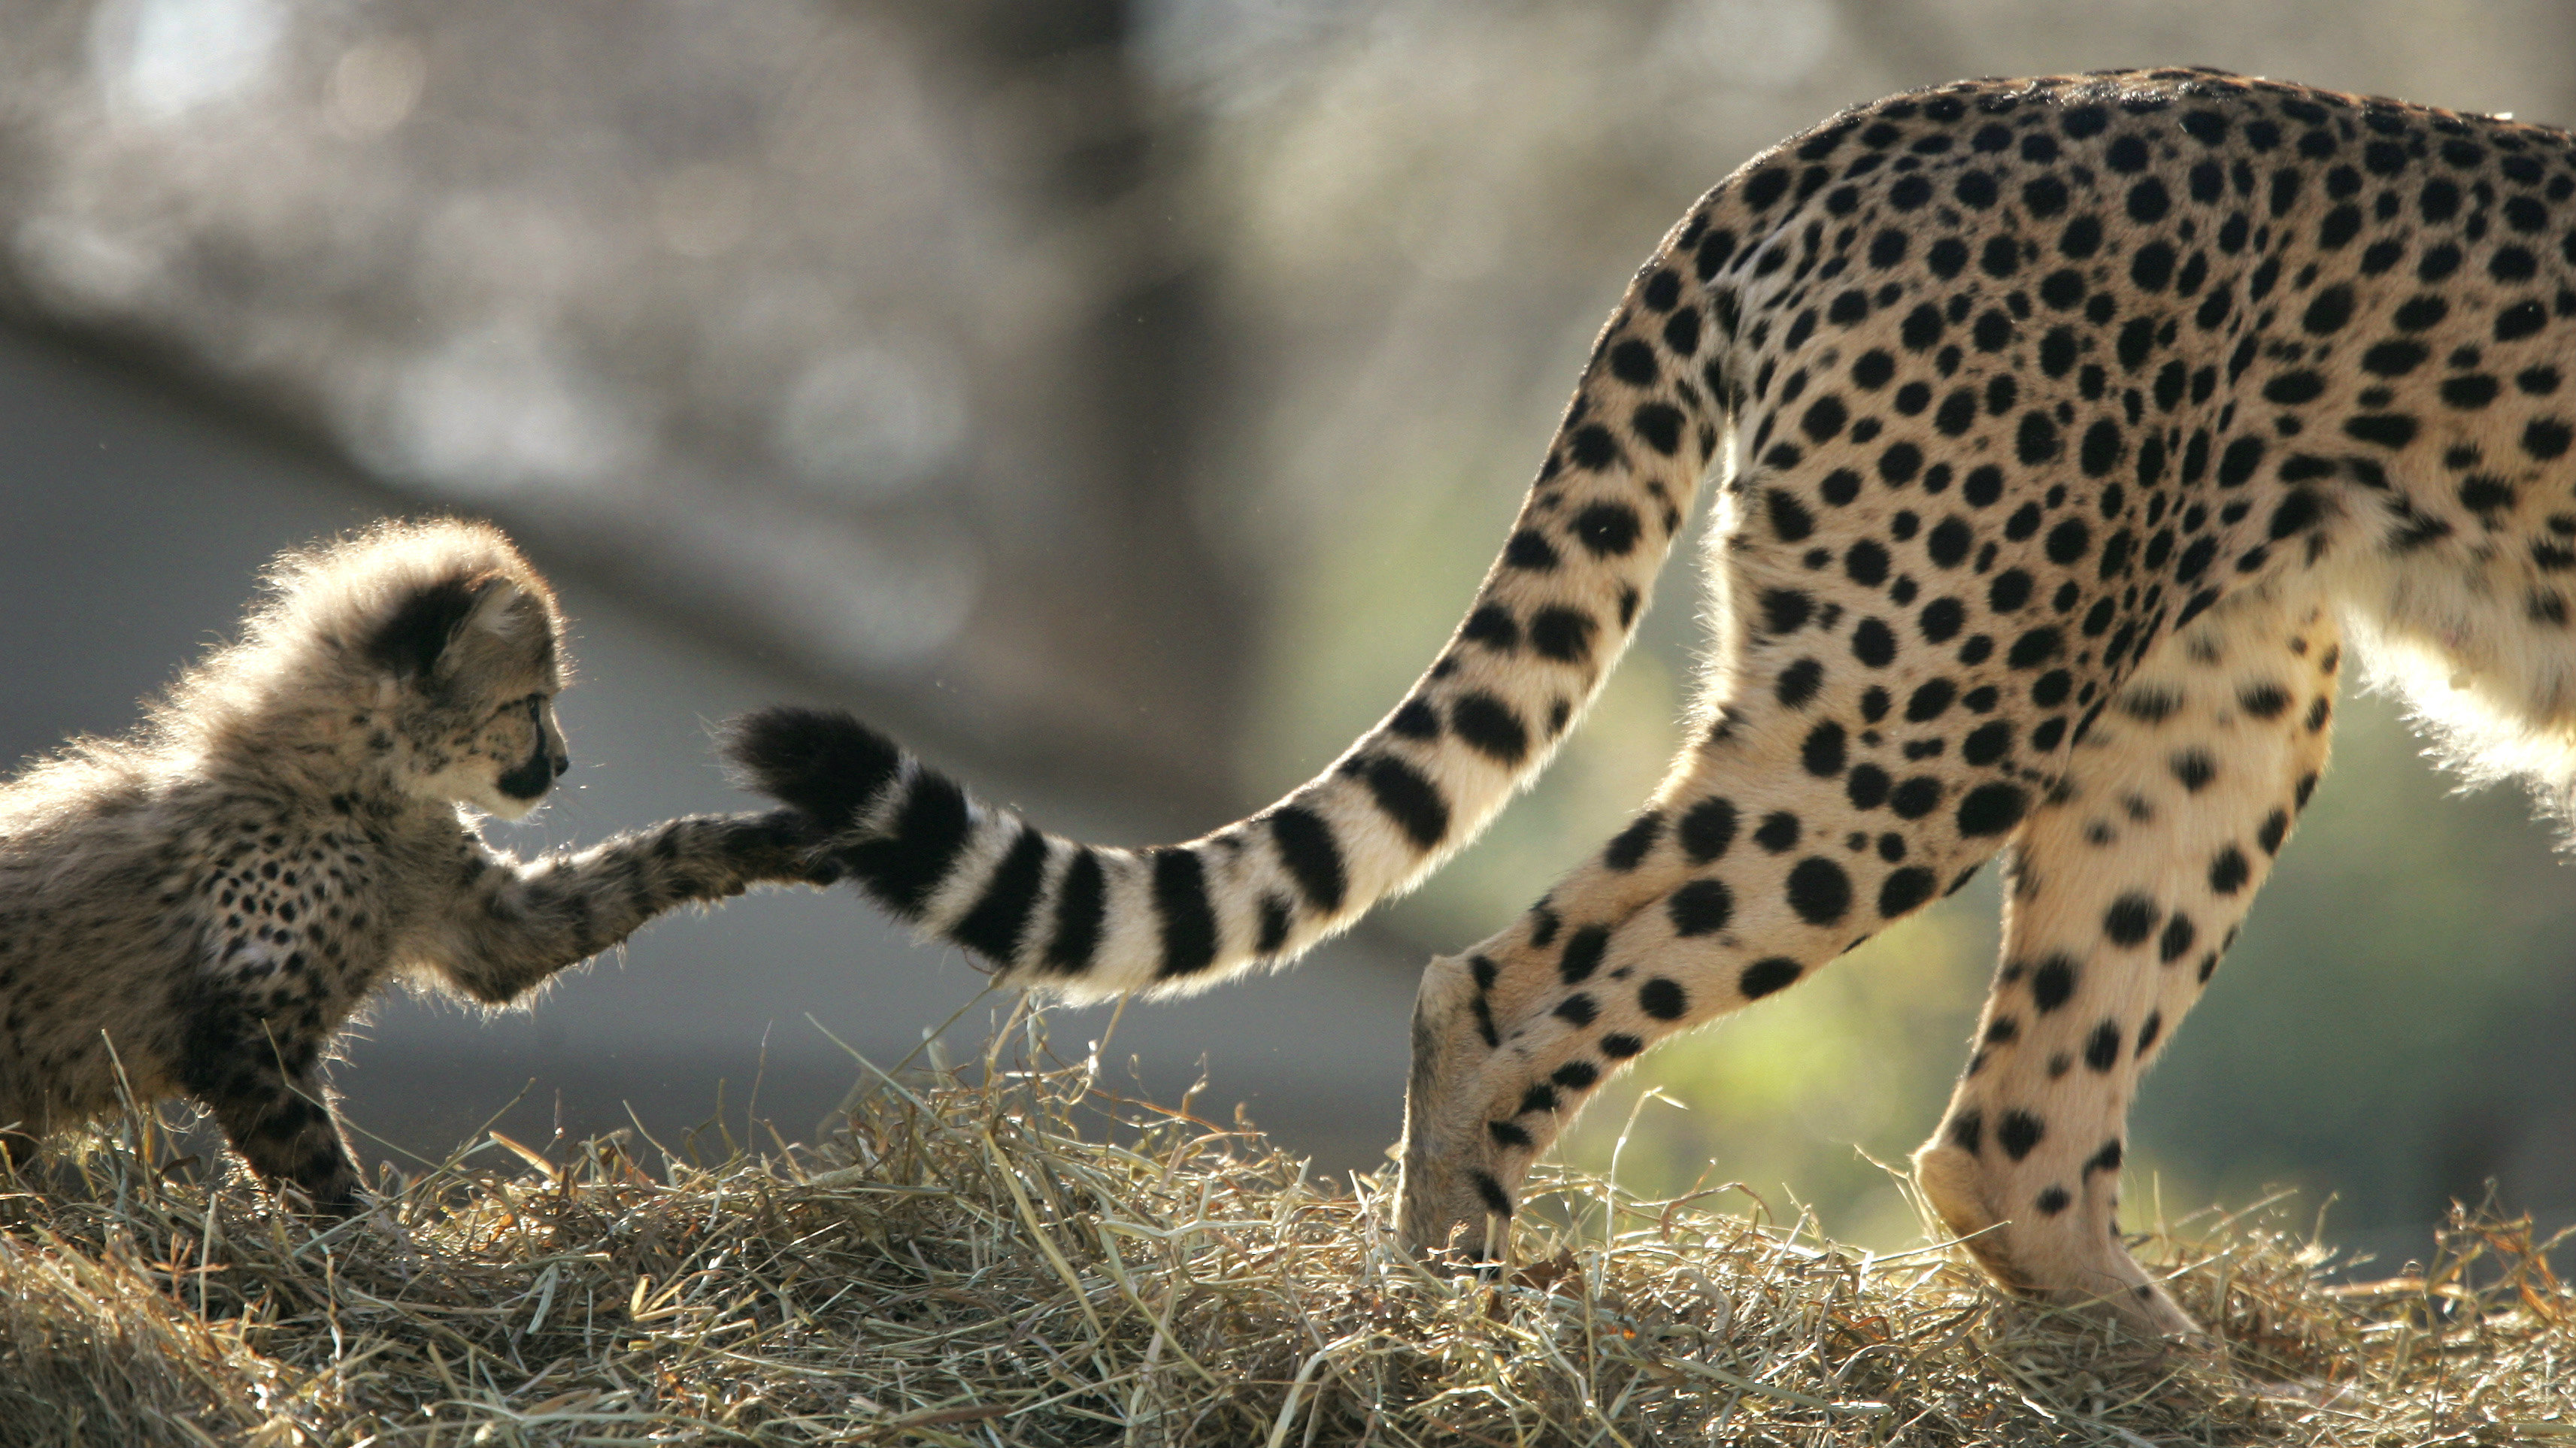 A 10-week-old cheetah cub plays with the tail of its mother Tumai, as a new litter of four new cubs were shown for the first time at Washington National Zoo February 4, 2005. The two male and two females are the first litter of cheetahs born at the National Zoo during its 115 year history and will go on public exhibit February 5. NO RIGHTS CLEARANCES OR PERMISSIONS ARE REQUIRED FOR THIS IMAGE. REUTERS/Jason Reed JIR